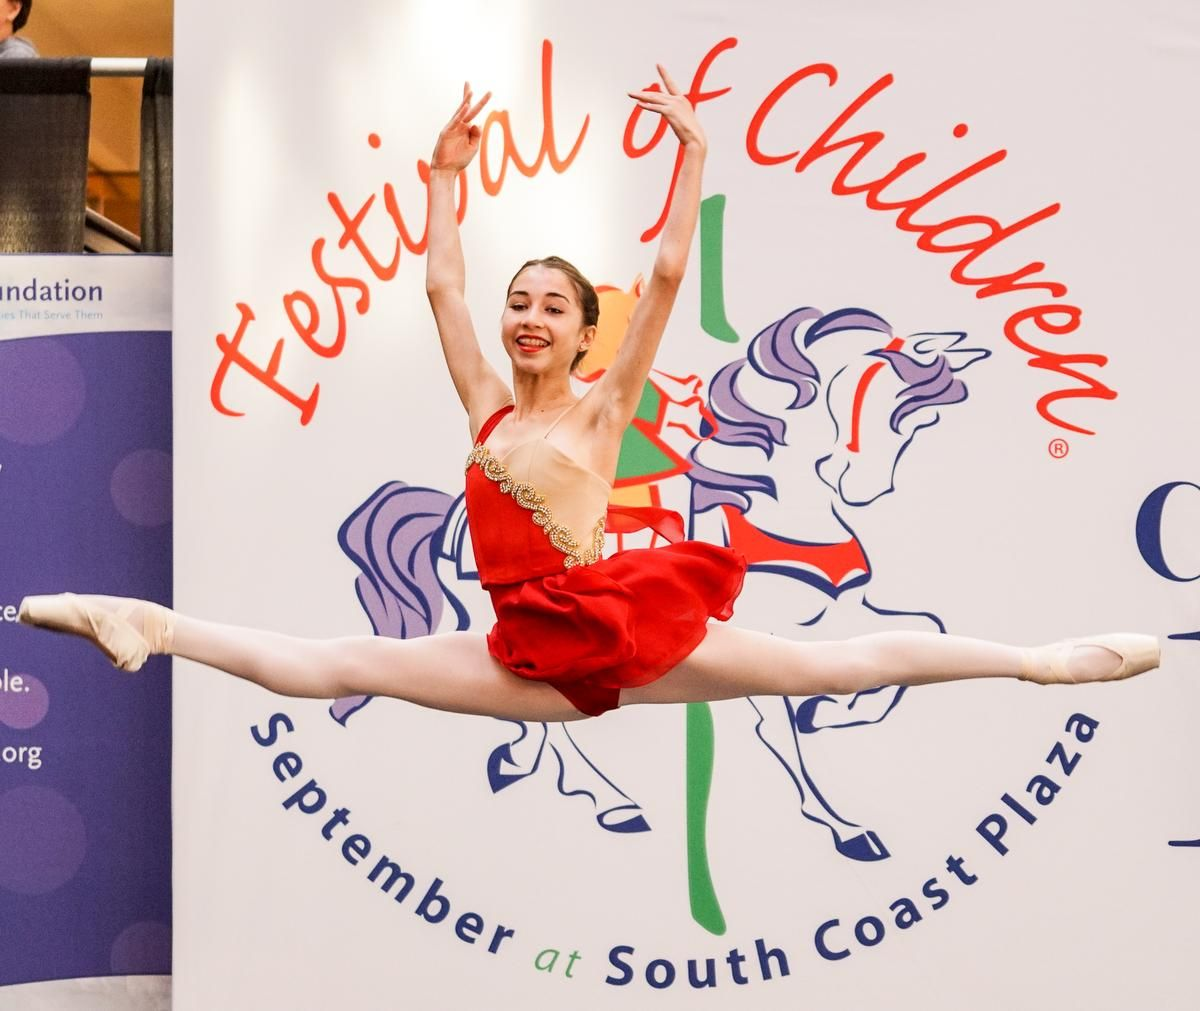 Southland students dance to inspire at Festival of Children - The Orange County Register